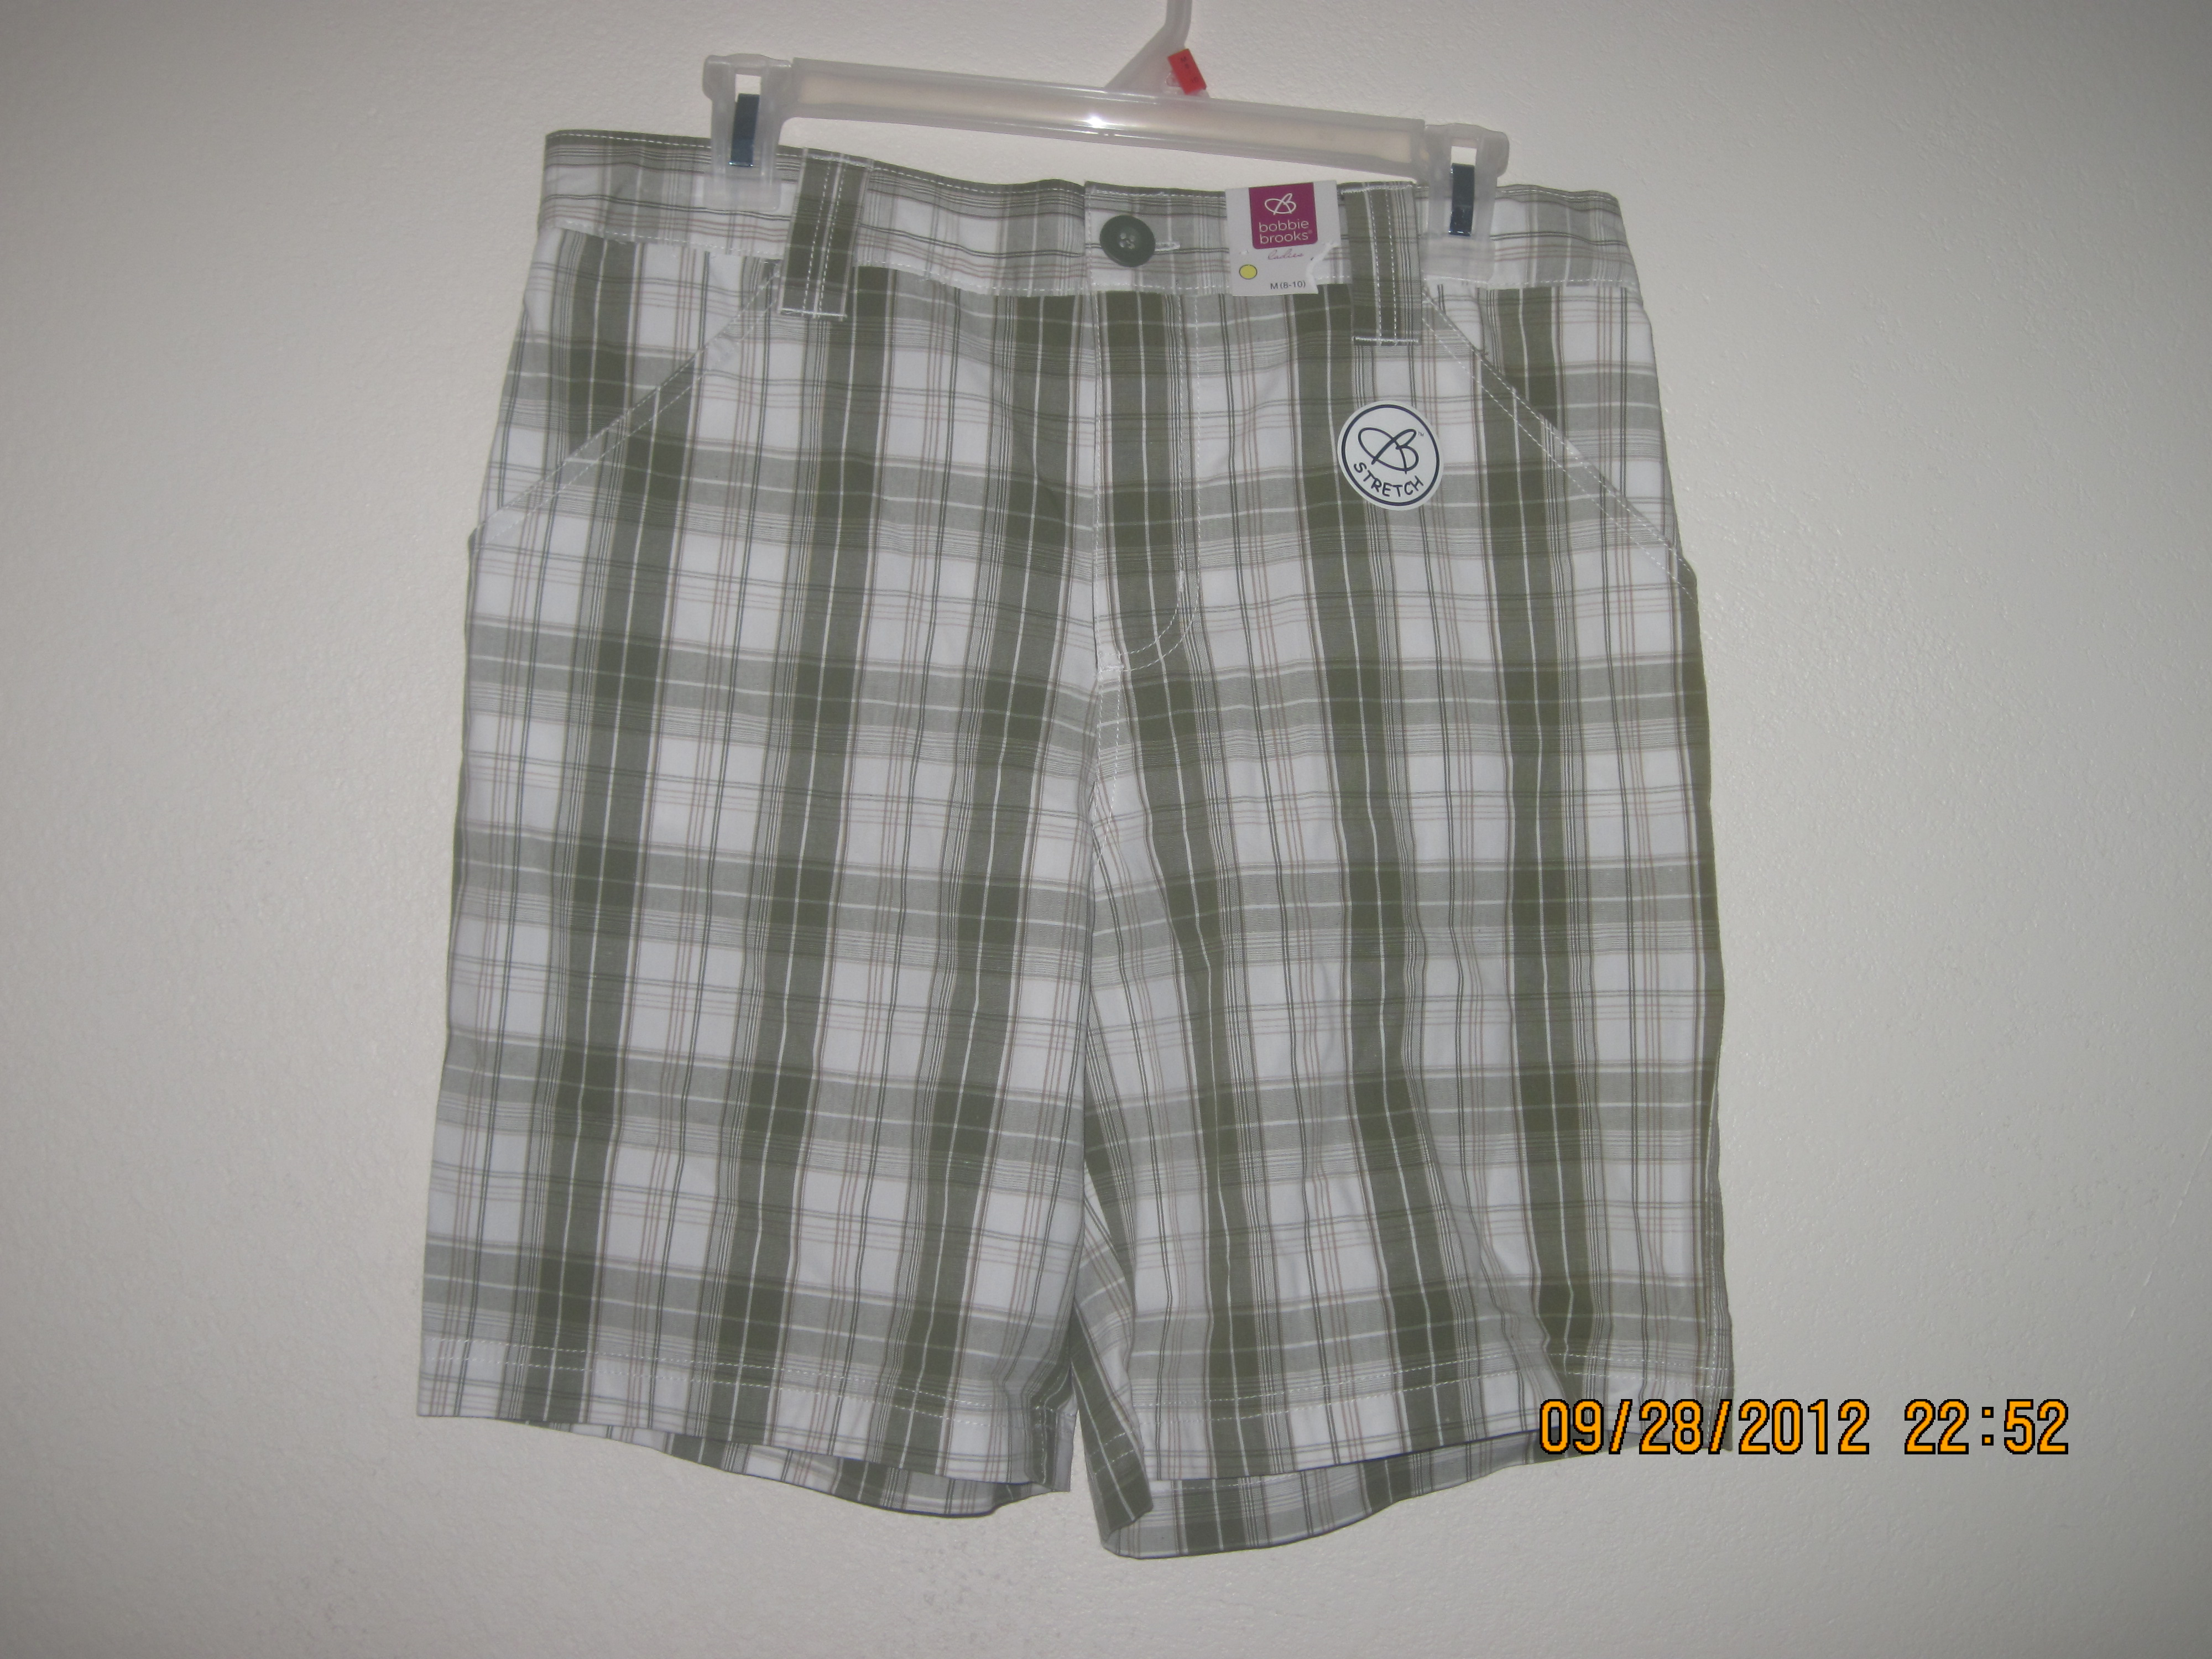 Bobbie Brooks Green Stretch Plaid Shorts Sz 1X 16-18